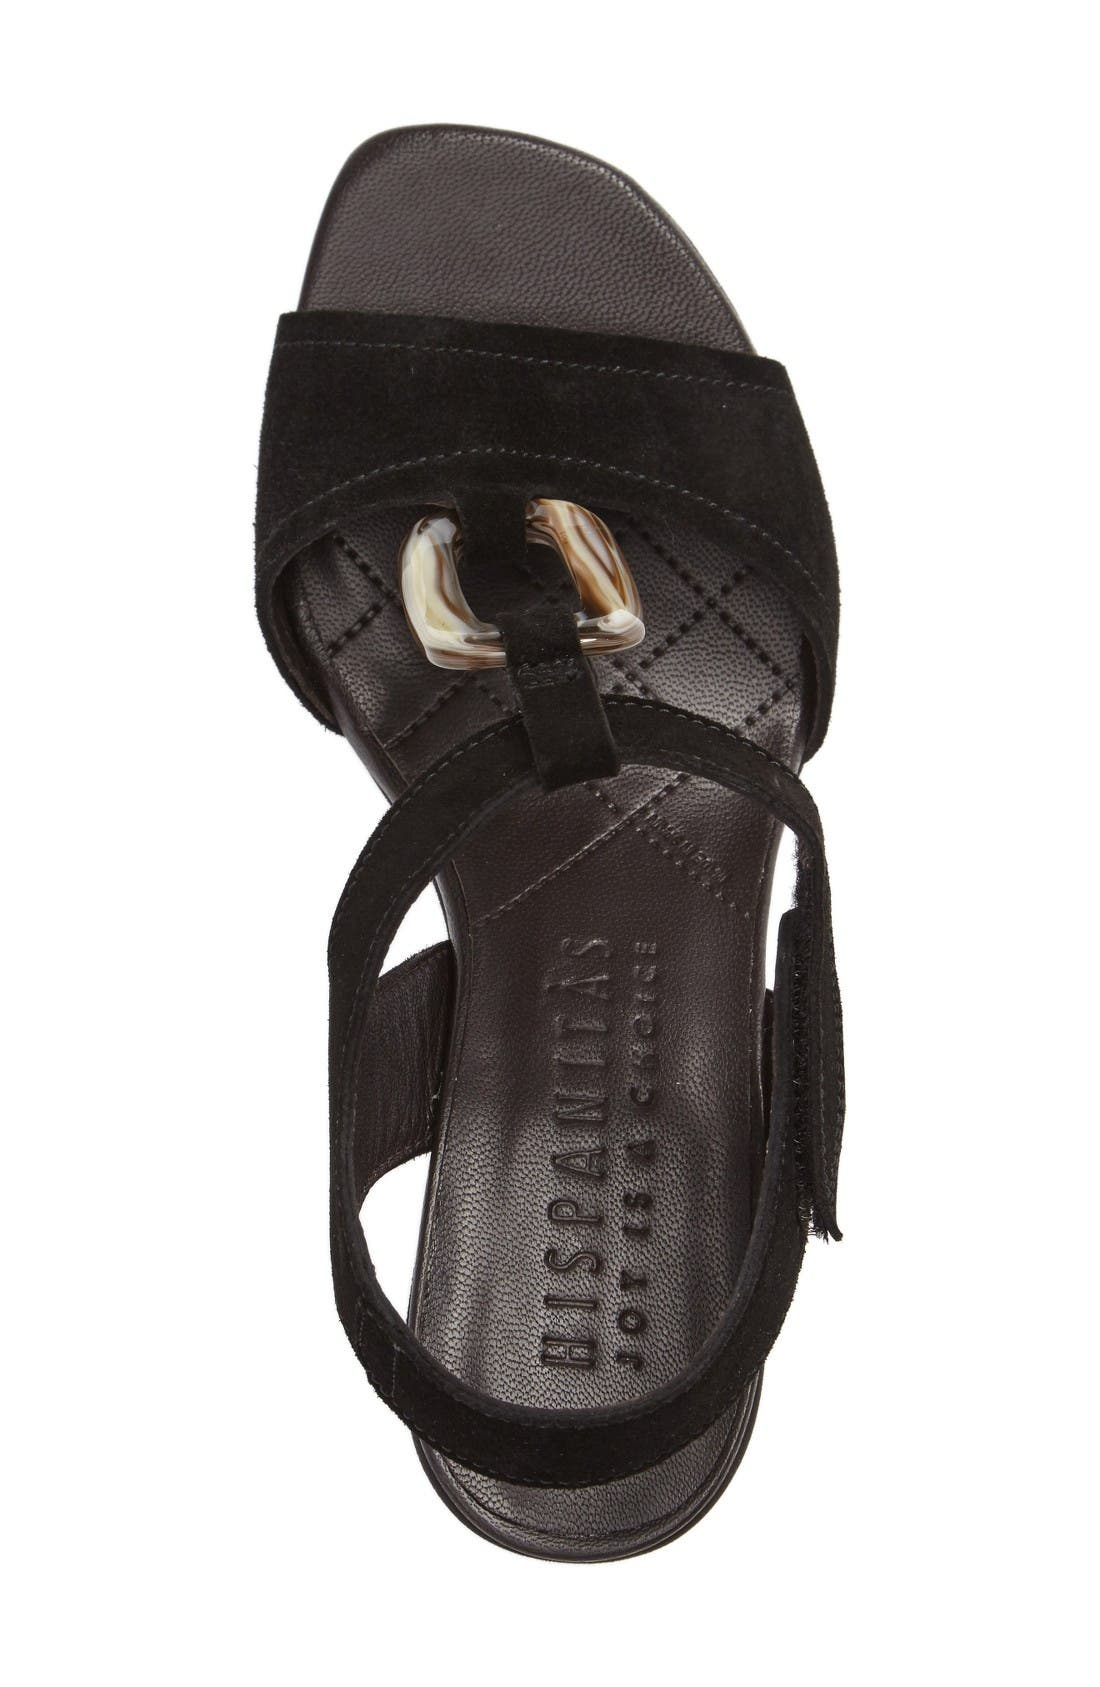 Alternate Image 3  - Hispanitas Ursula Ringed T-Strap Sandal (Women)